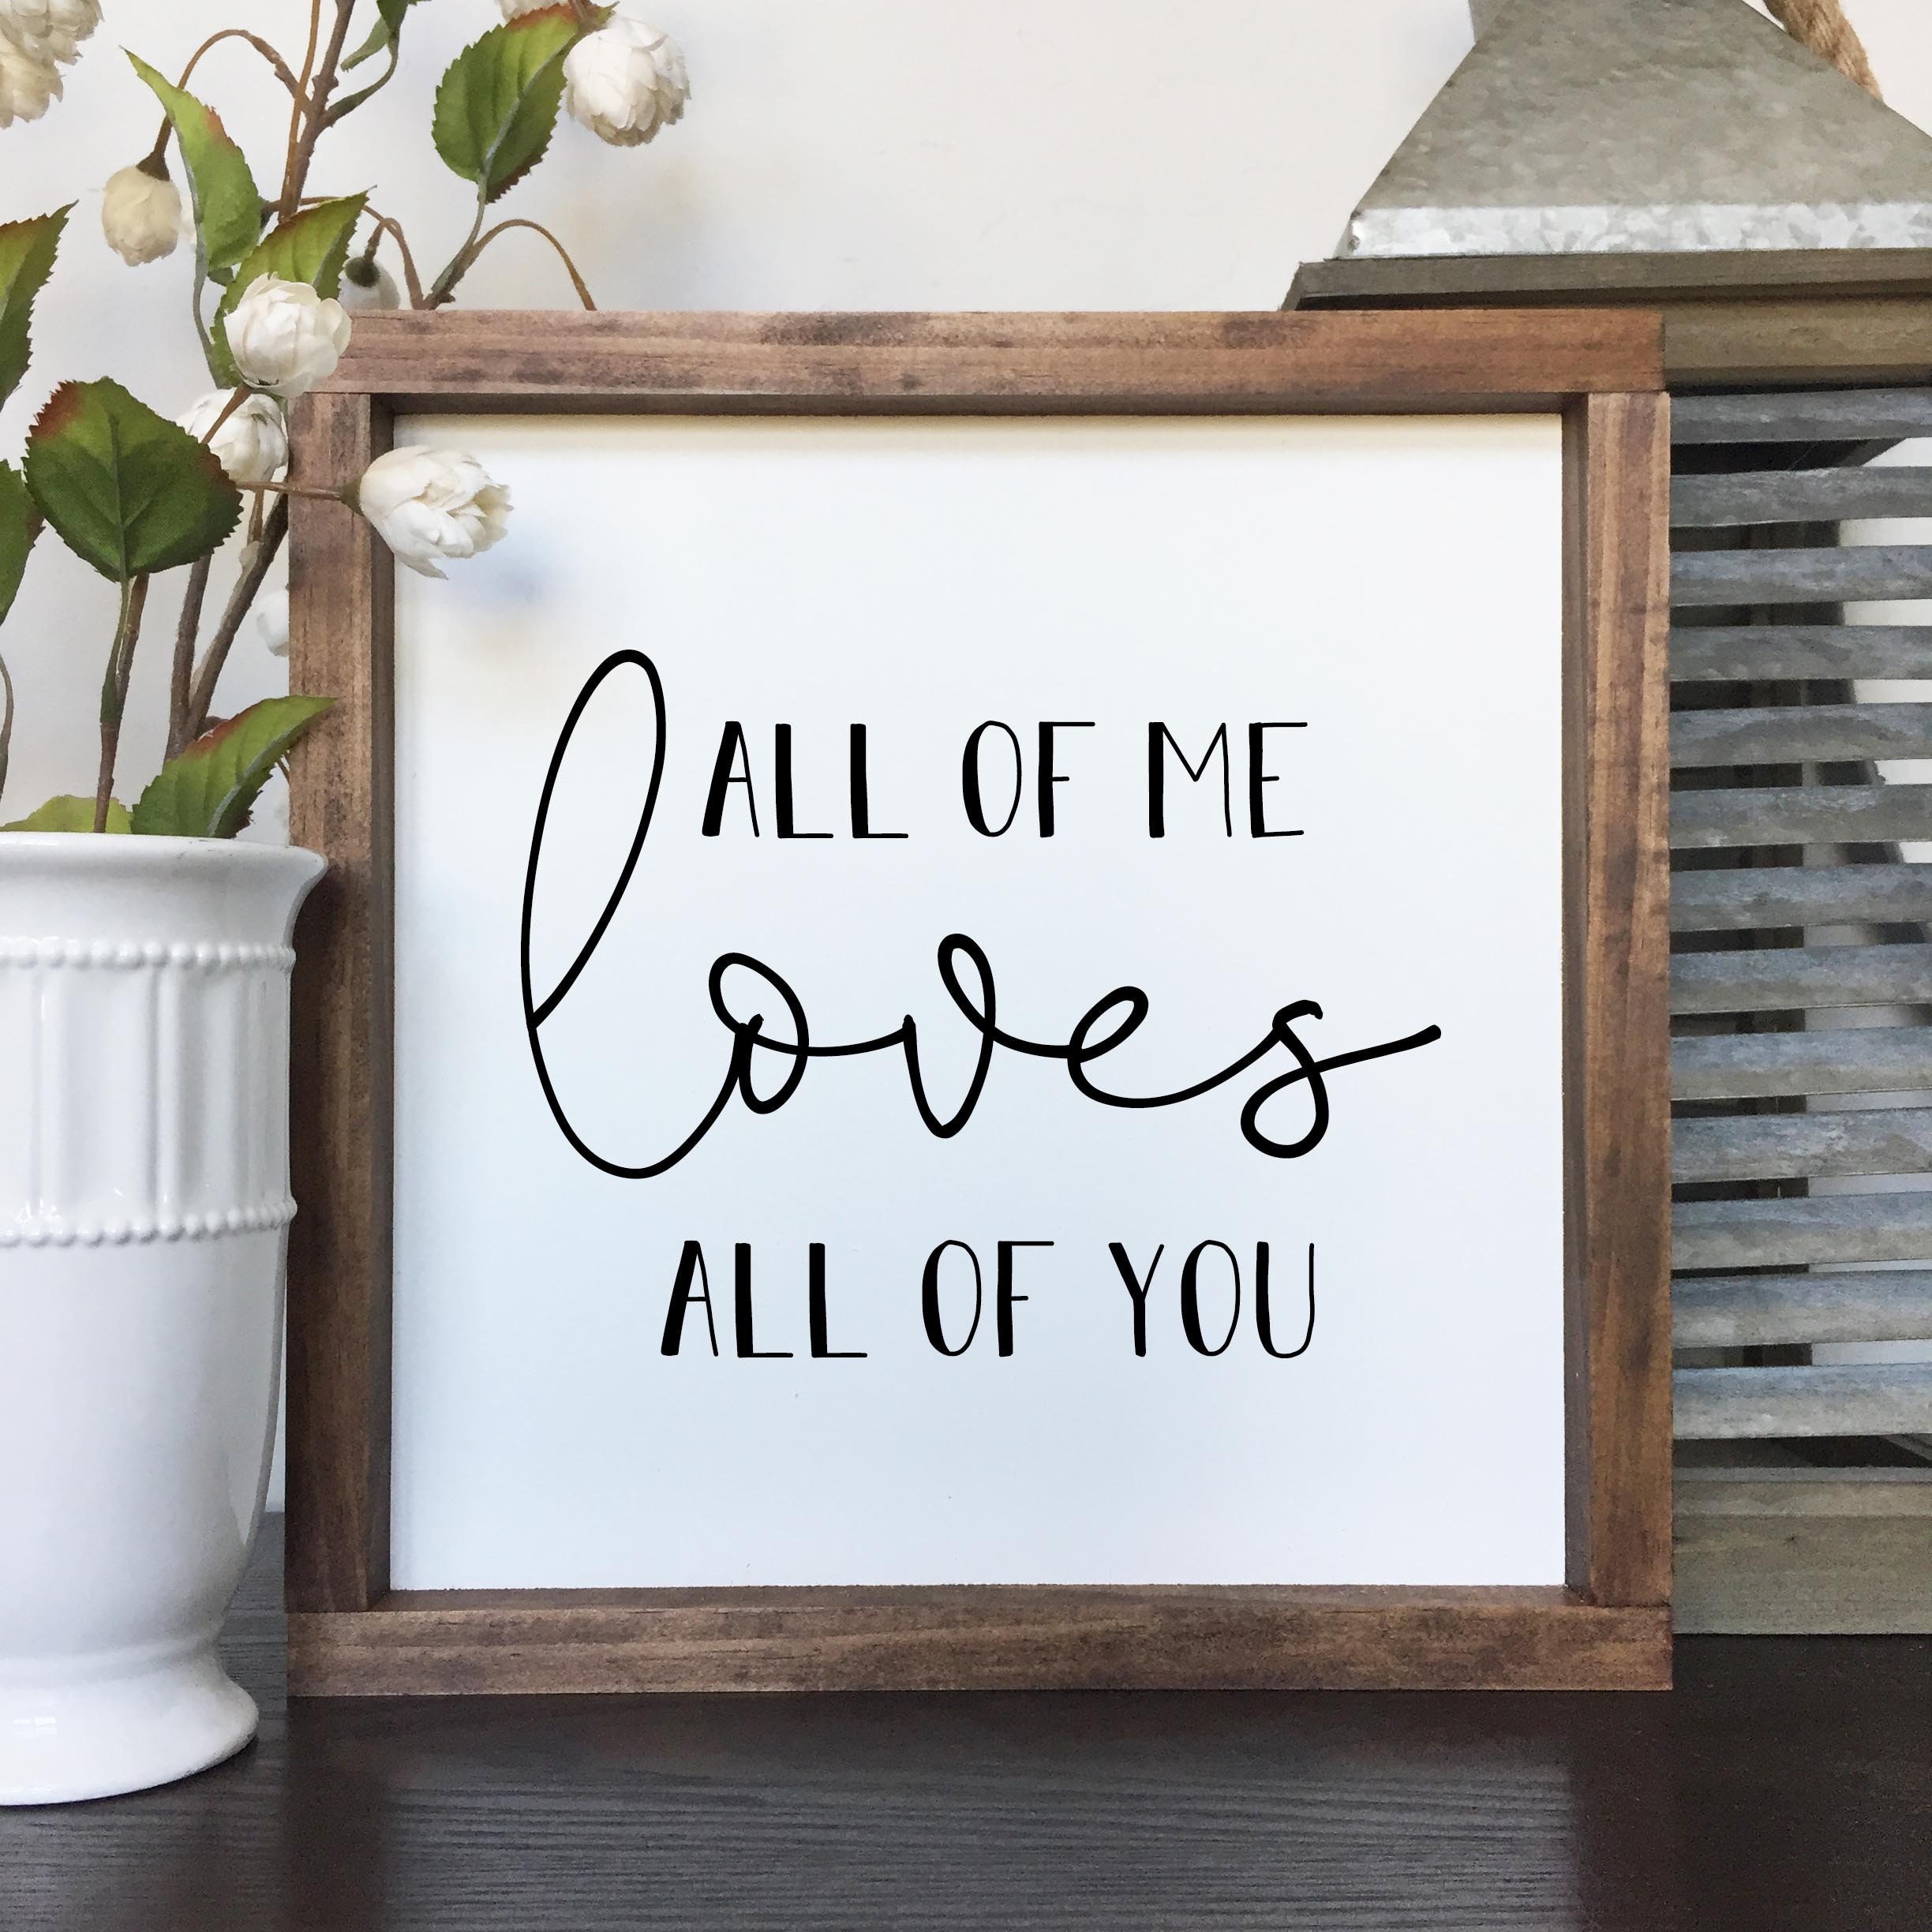 All of me loves all of you Wood Sign, Lyric Wood Sign, Song Sign ...